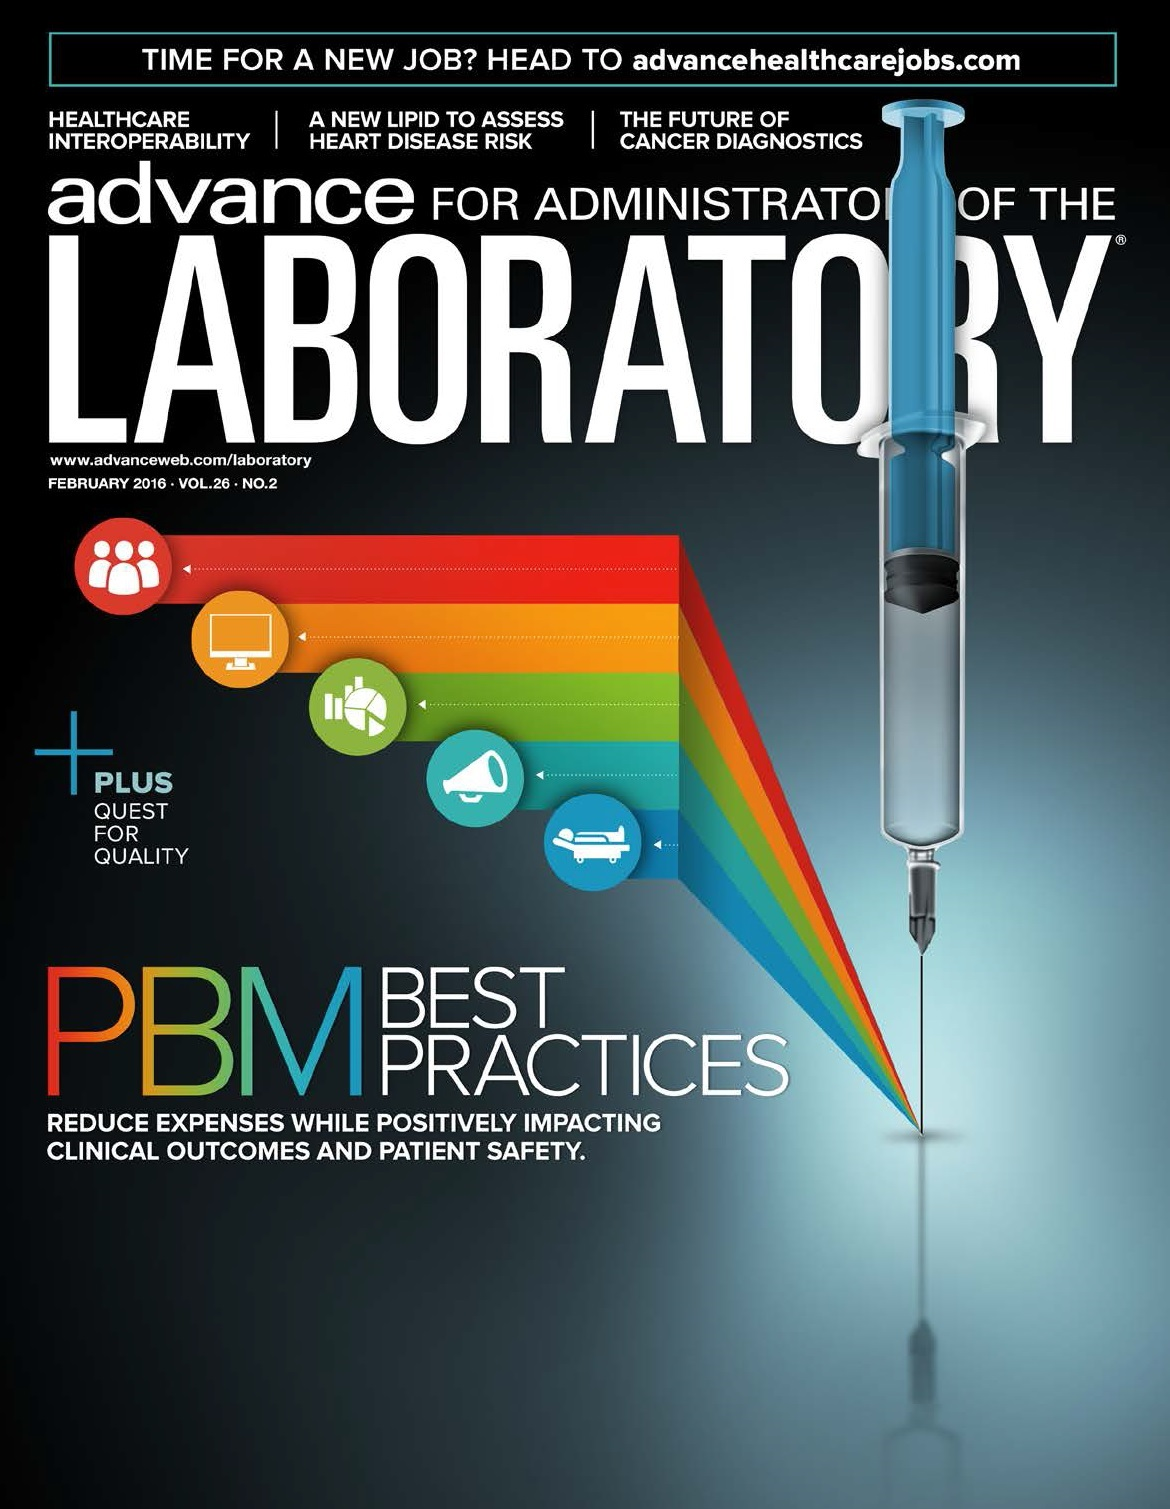 Image for Joe Thomas, National Director of Patient Blood Management is featured in ADVANCE for Administrators of the Laboratory®